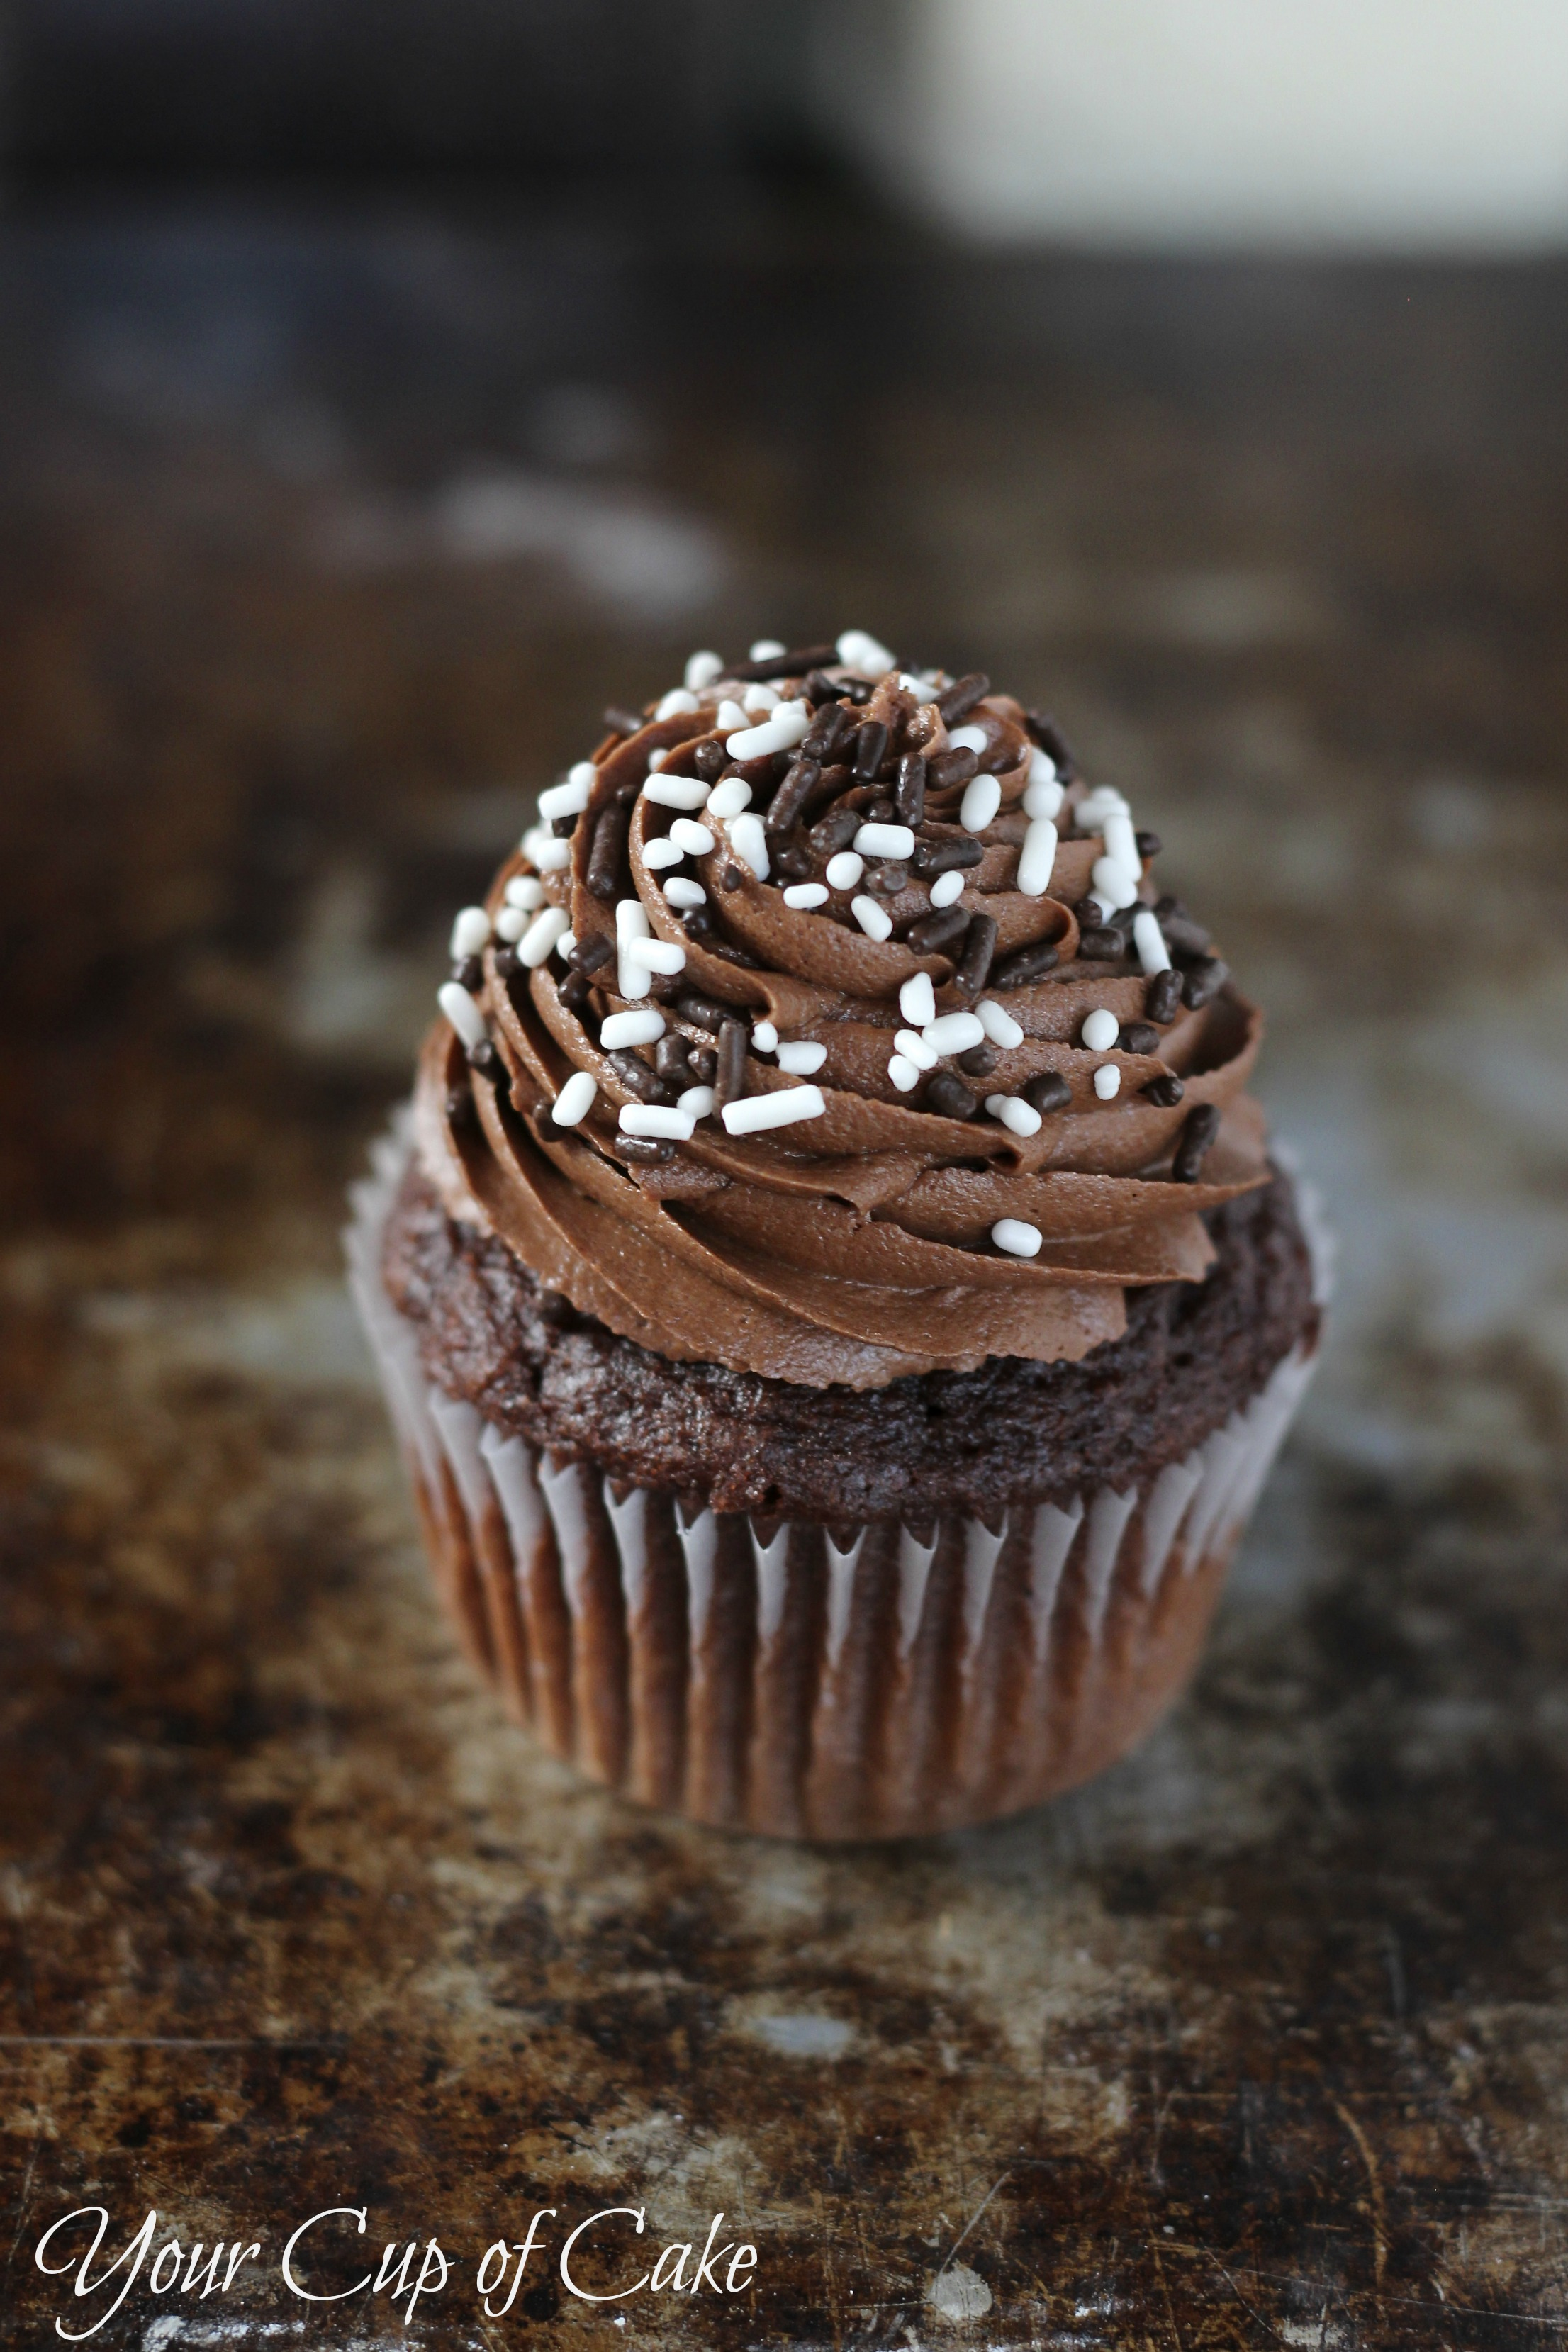 Cake With Cupcake Recipe : Easy Chocolate Cupcakes - Your Cup of Cake